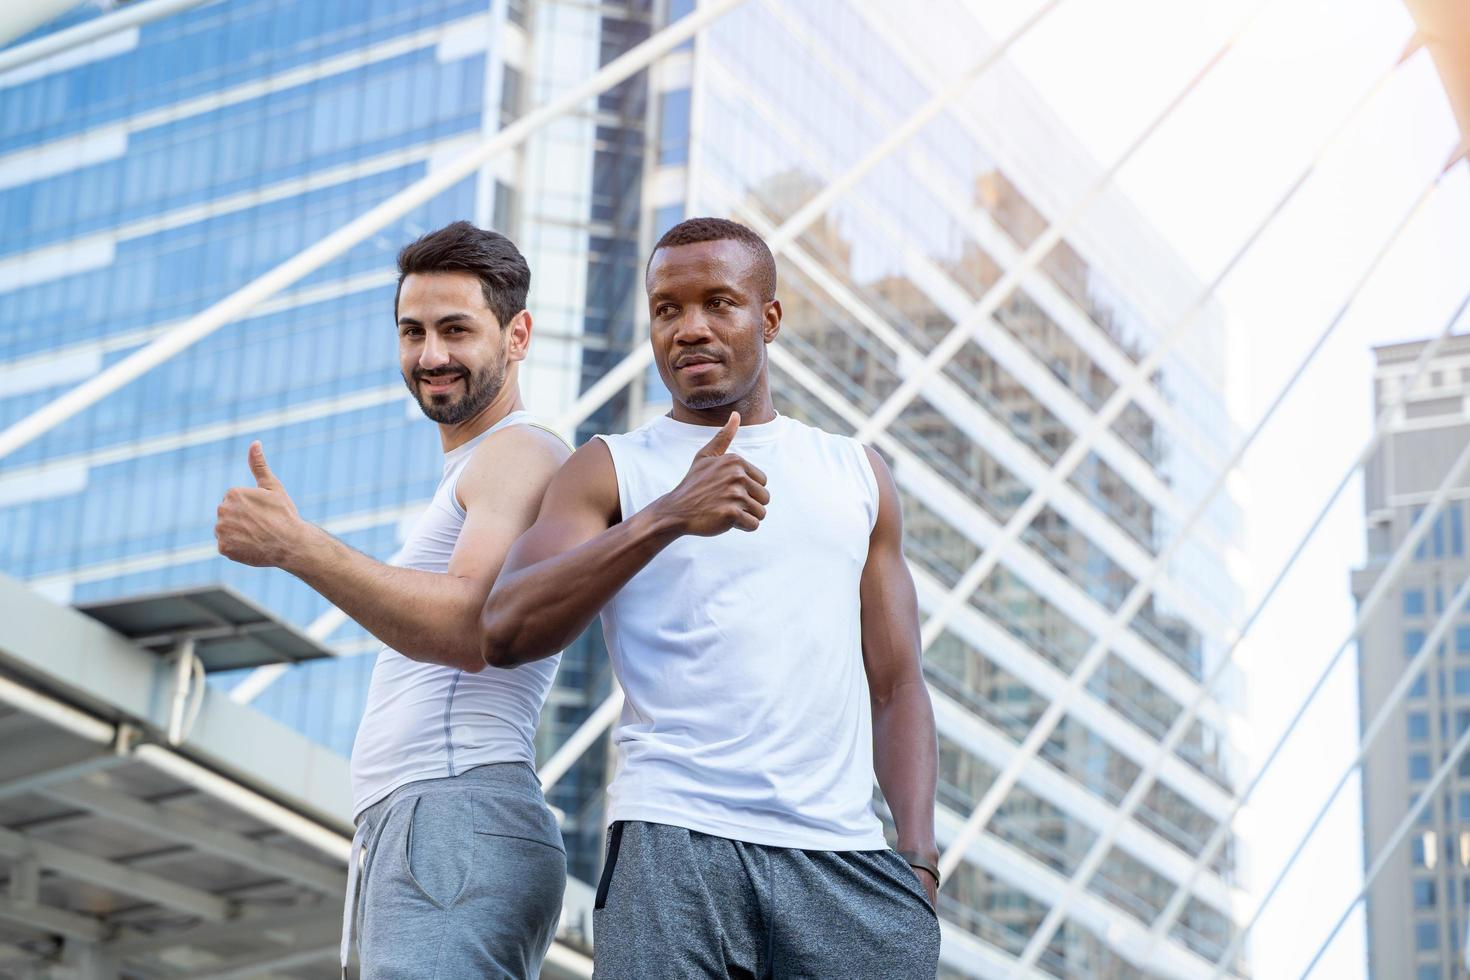 Two men in athletic clothes in city scene photo